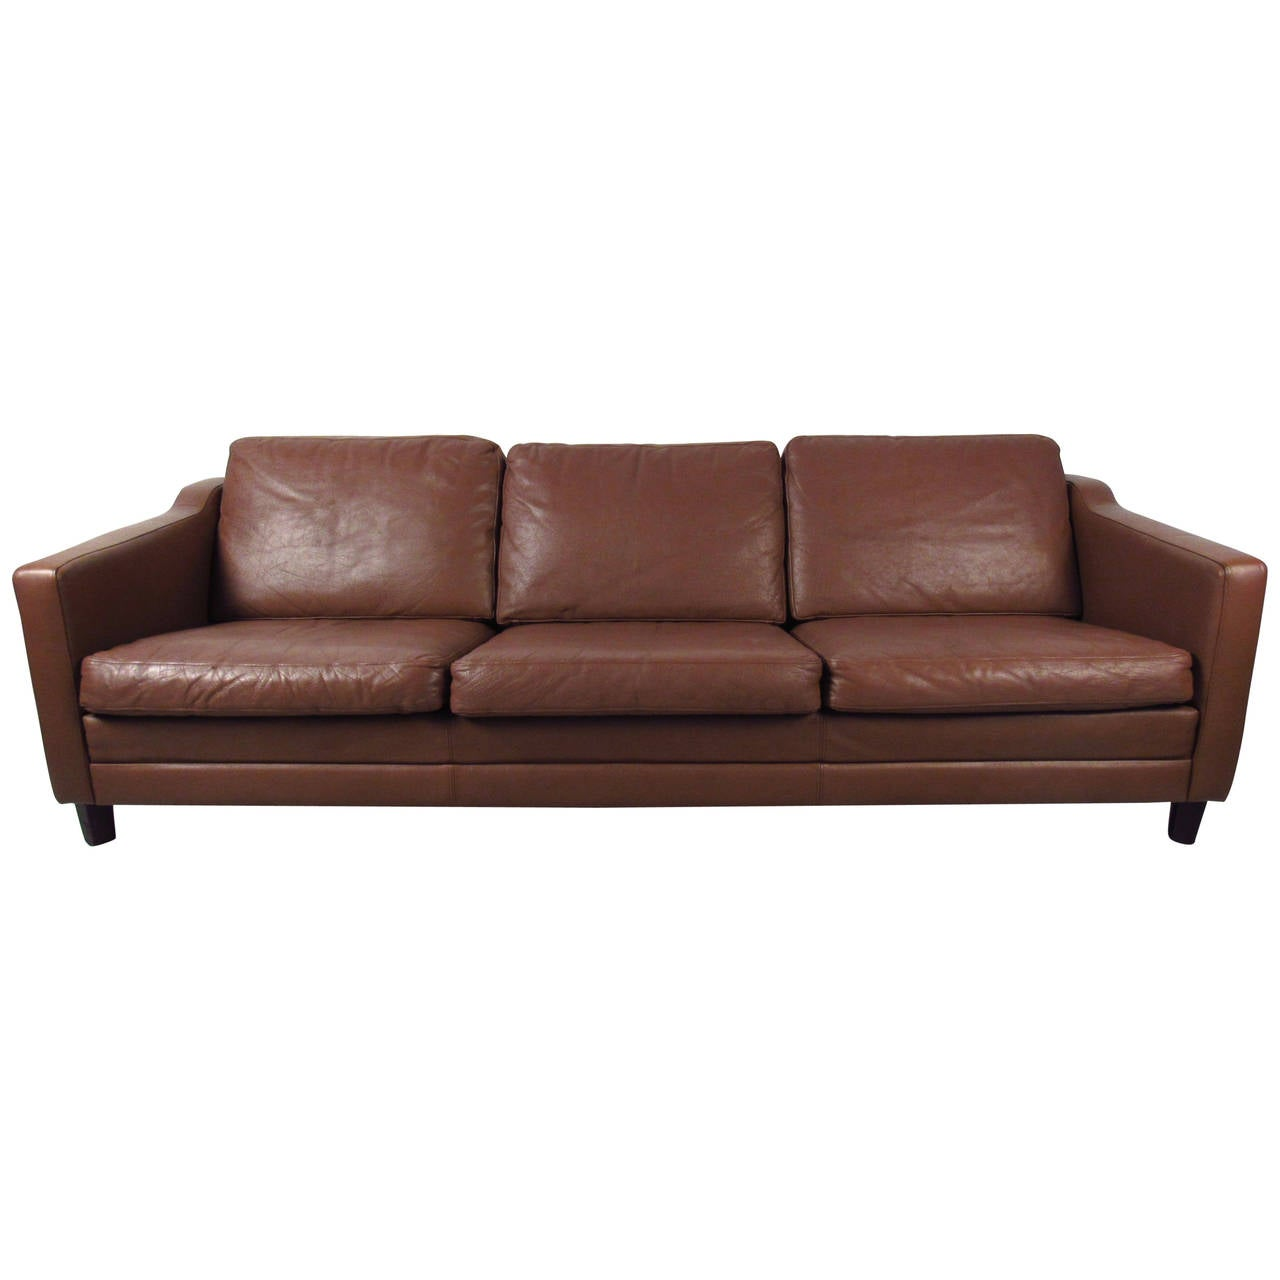 midcentury modern danish leather sofa in the style of børge  - midcentury modern danish leather sofa in the style of børge mogensen